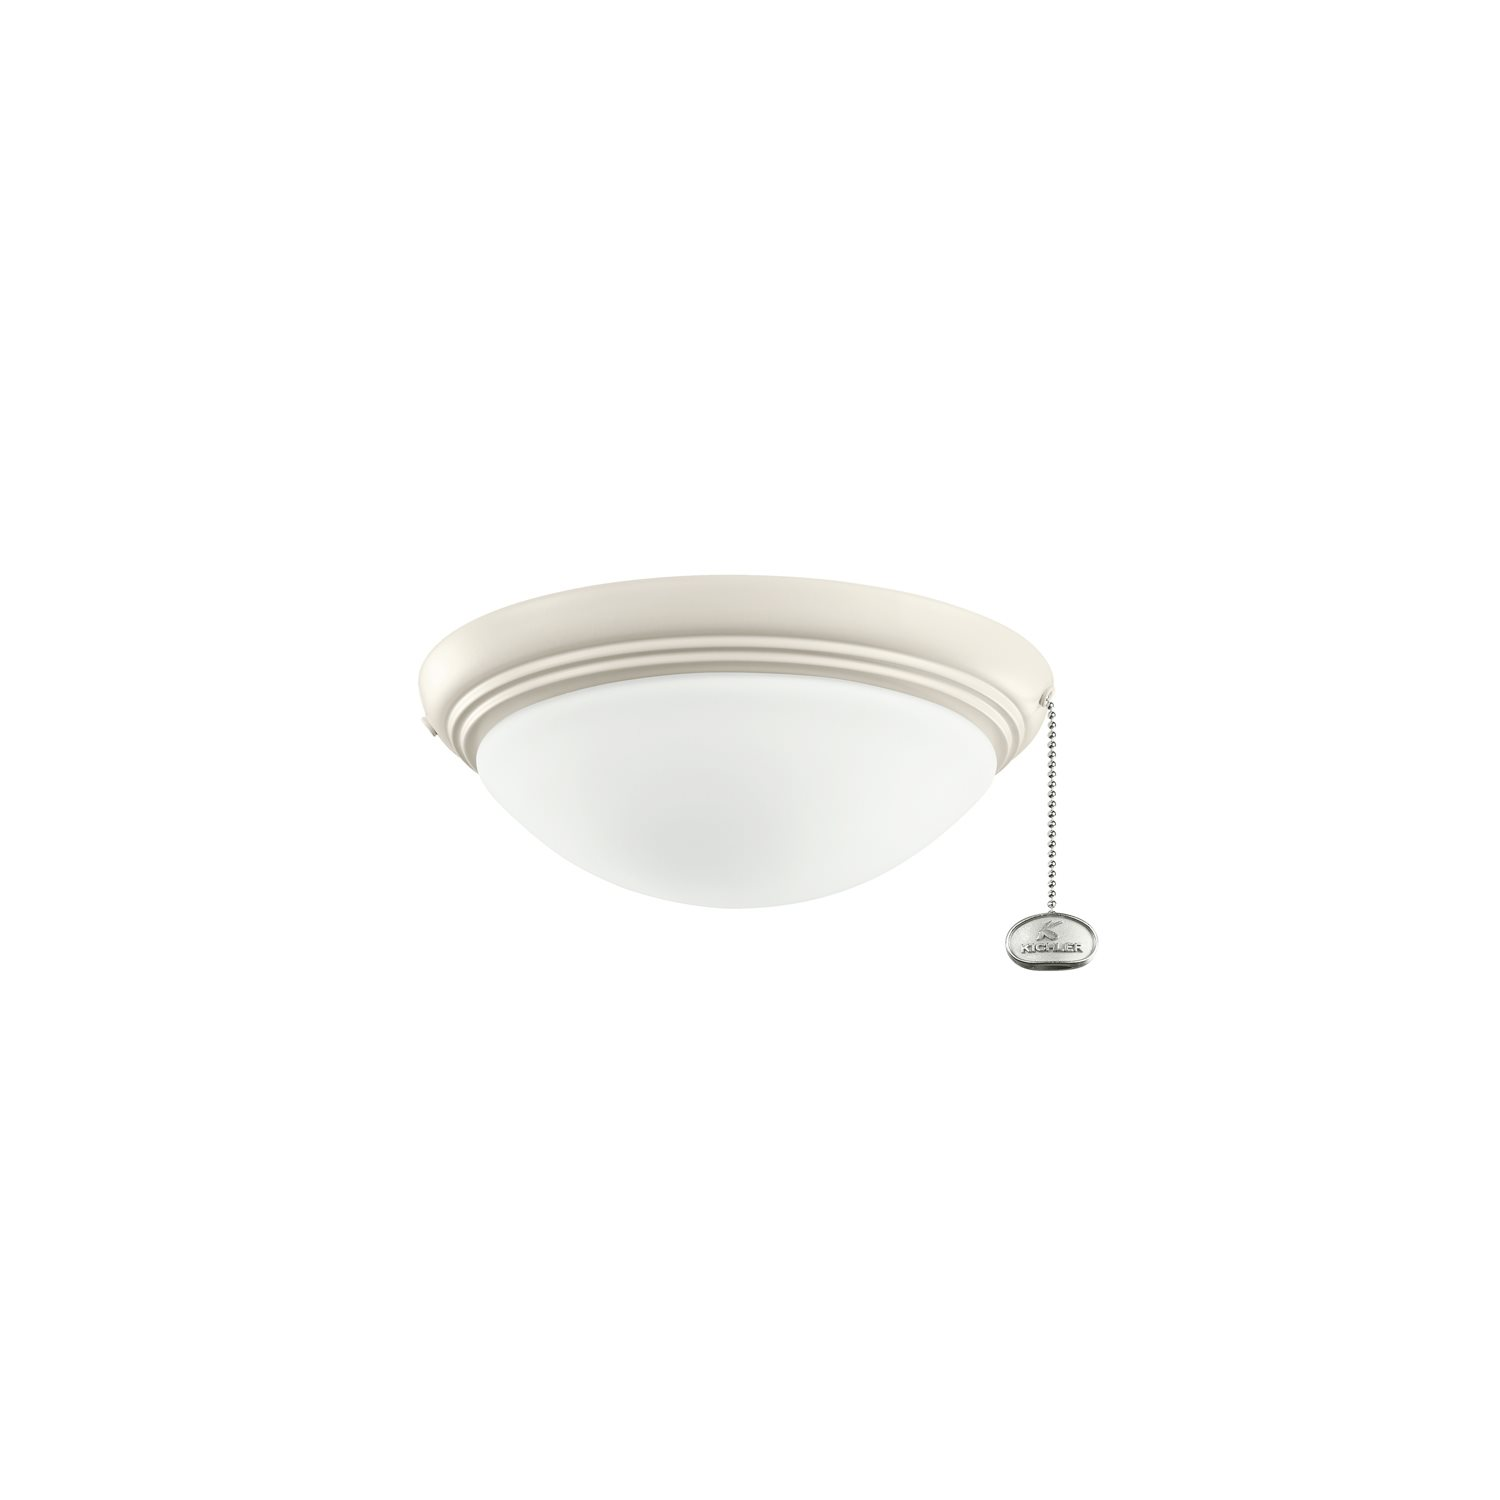 Kichler Lighting 380121ADC Basic Low Profile 42 46 Ceiling